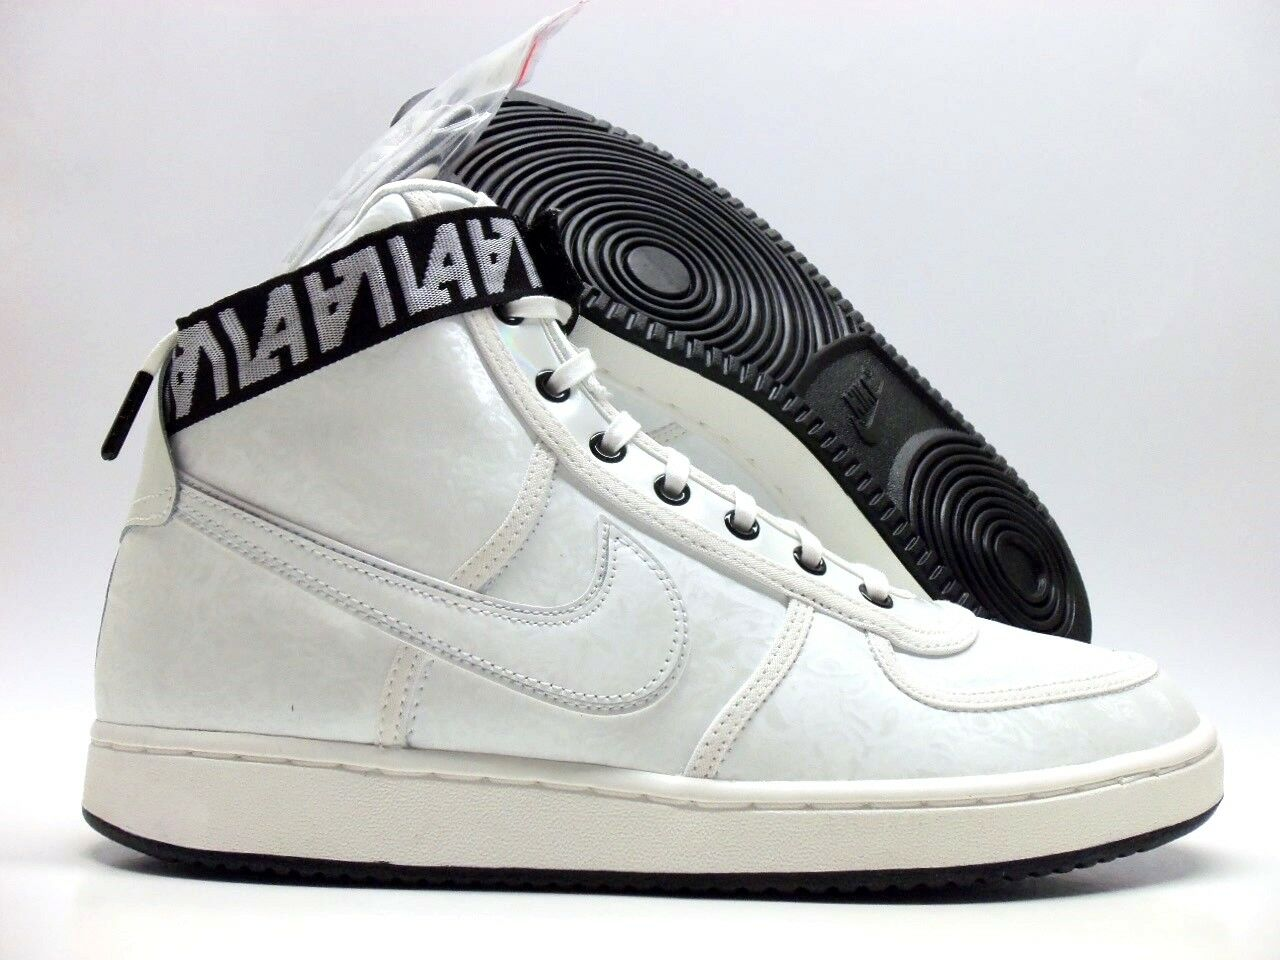 NIKE VANDAL HI LX SUMMIT WHITE/SUMMIT WHITE SIZE WOMEN'S 10/MEN 8.5 [AH6826-100]